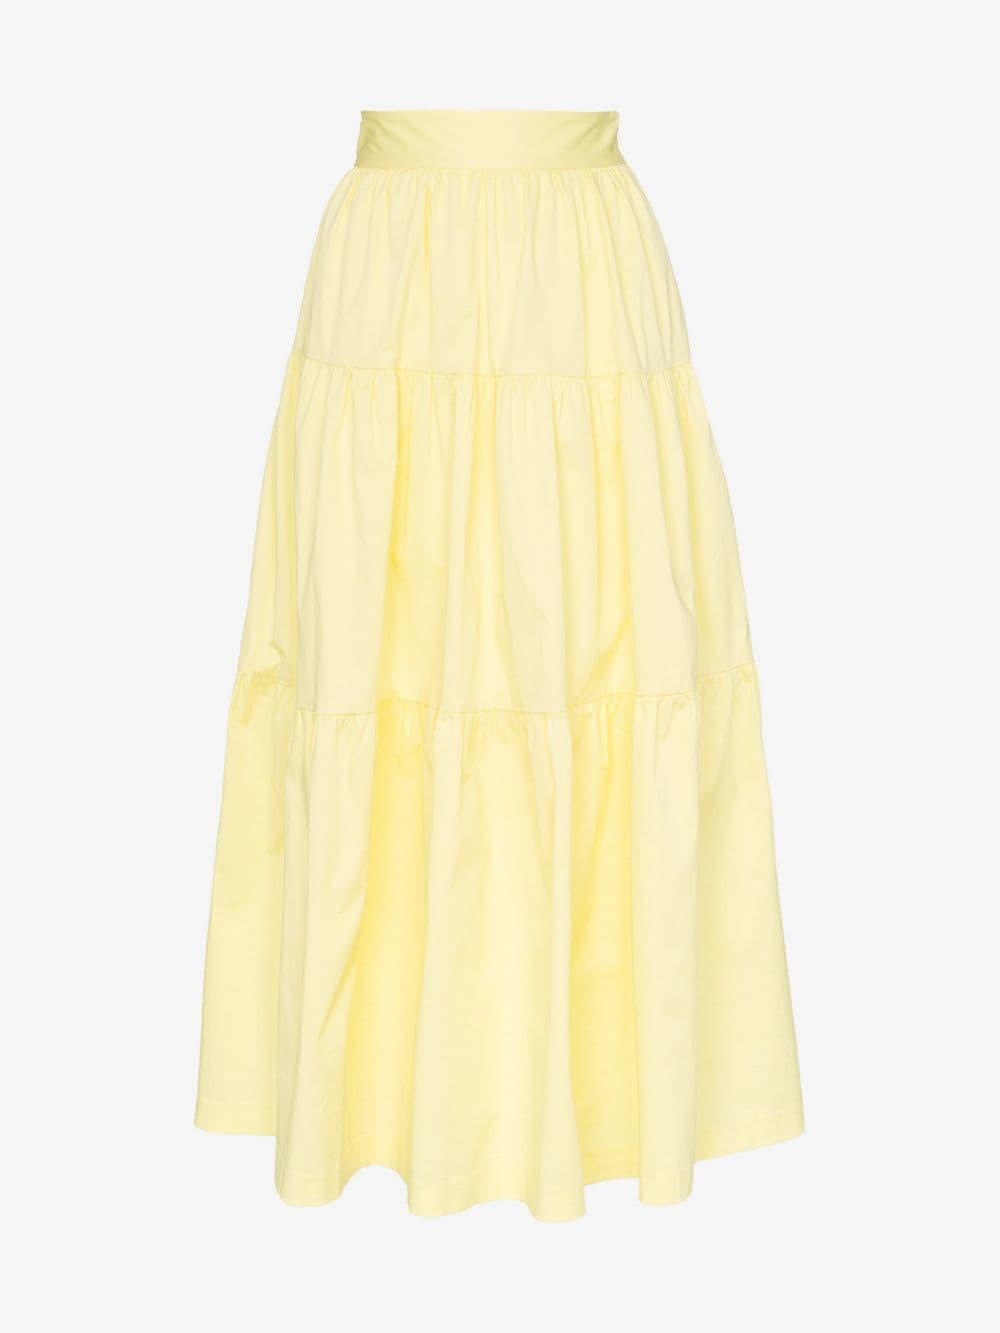 Staud tiered cotton-blend maxi skirt in yellow